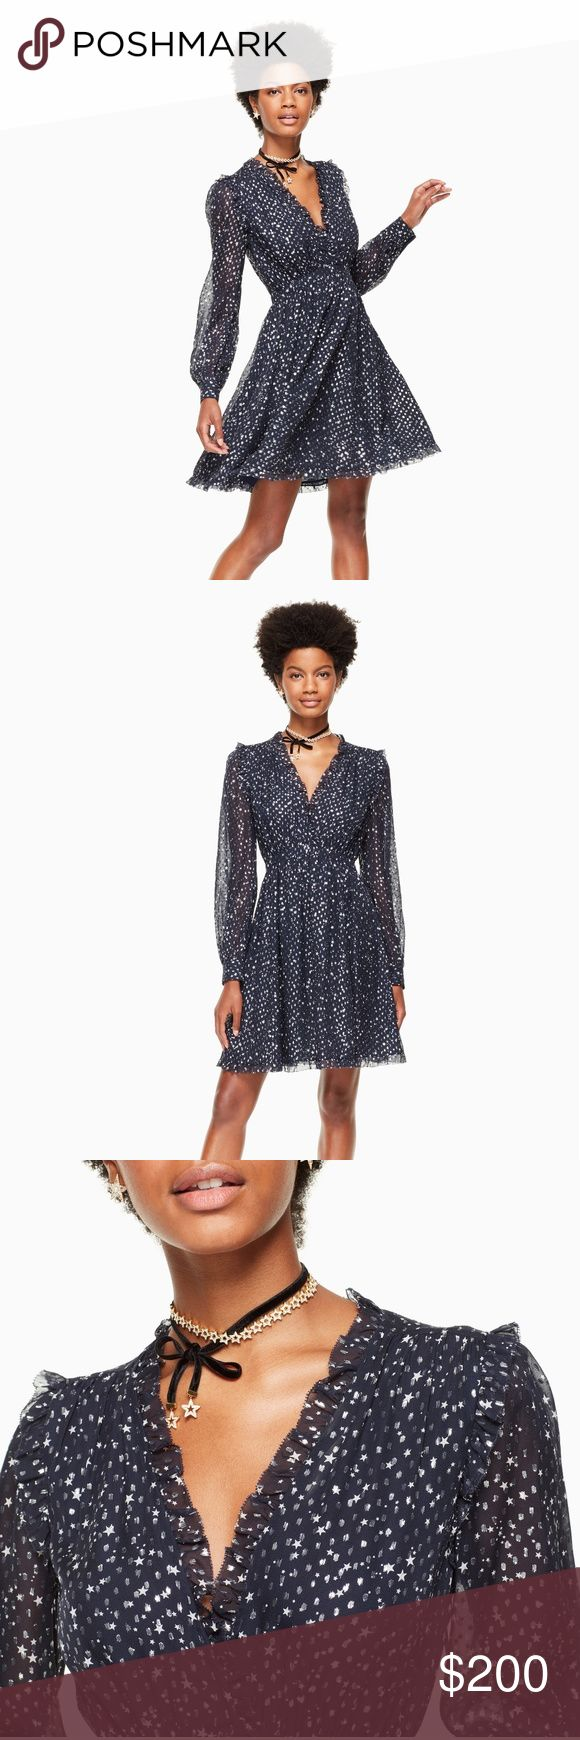 "kate spade night sky lurex dot mini dress $428 Still selling on kate spade for full price!  description  make a wish. this gathered dress comes in a gorgeous, starry print for a new take on classic polka dots, inspired by nature's very own fireworks. woven with metallic threads, the fabric glints under any lighting for an eye-catching 3D effect.   FEATURES  100% silk  lining: 100% polyester  long blouson sleeves  mini length  full gathered skirt  FIT  fit and flare  size 4 measures 36.5""…"